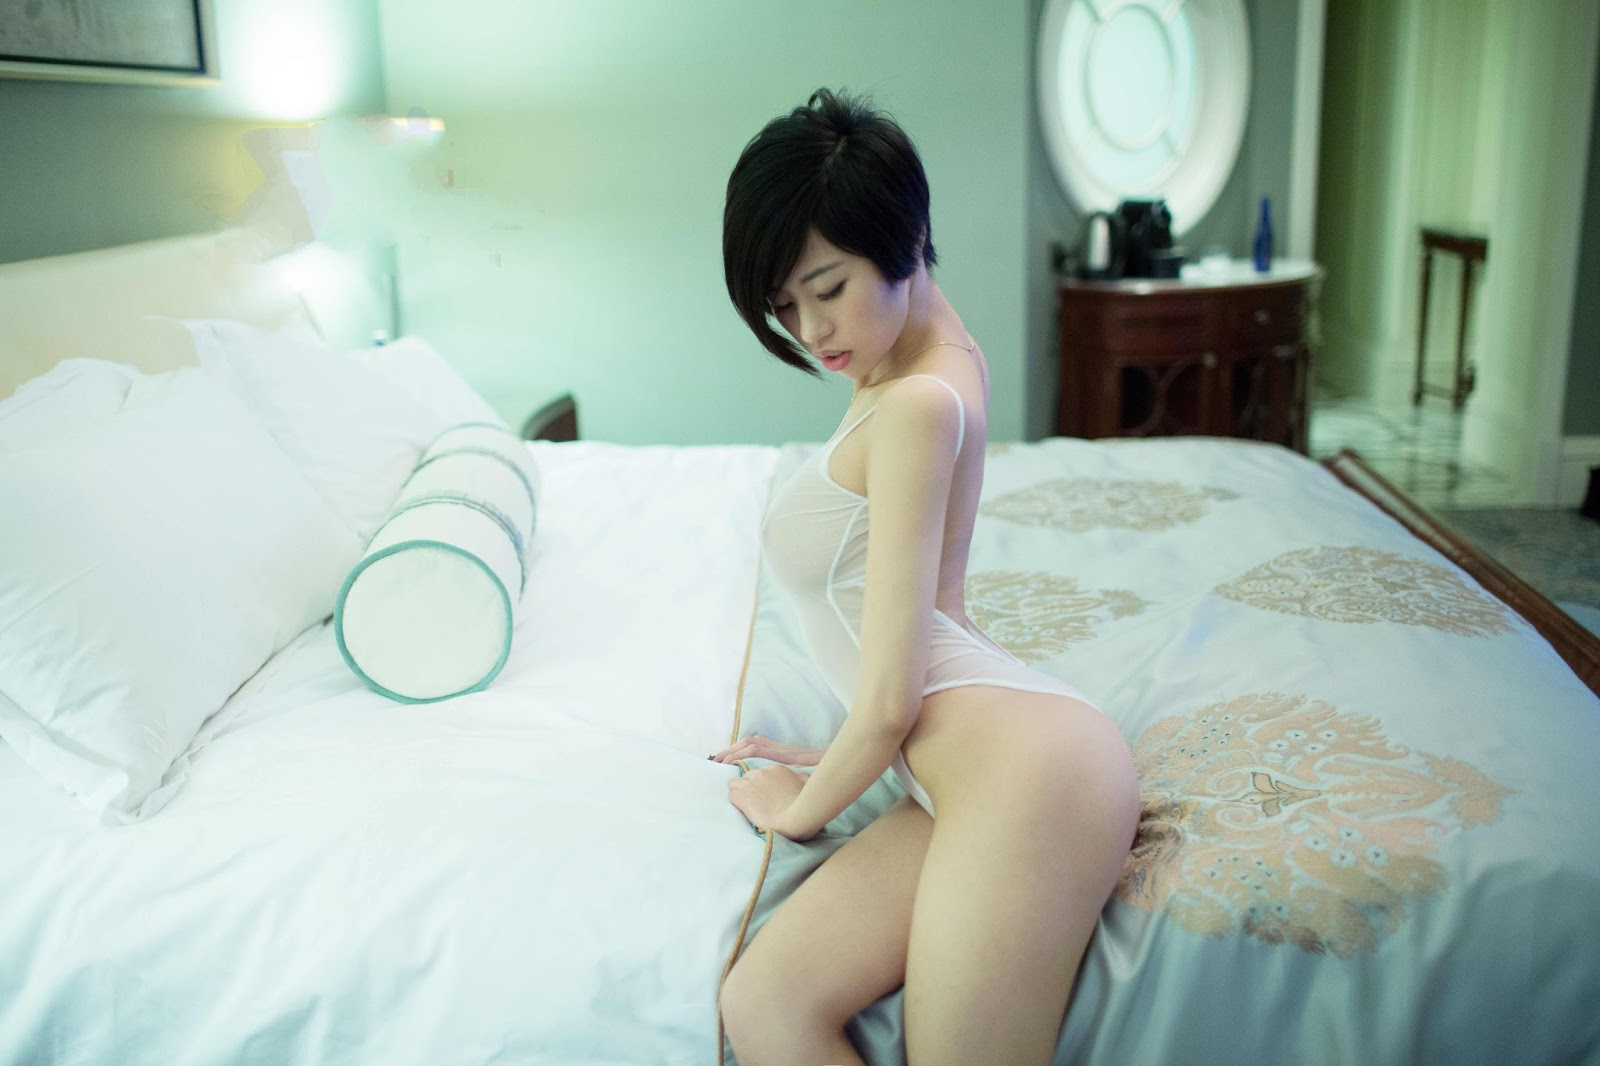 Goddess Sexiest Babe Lina 推女郎 Transparent Lingerie With Pink Nipple